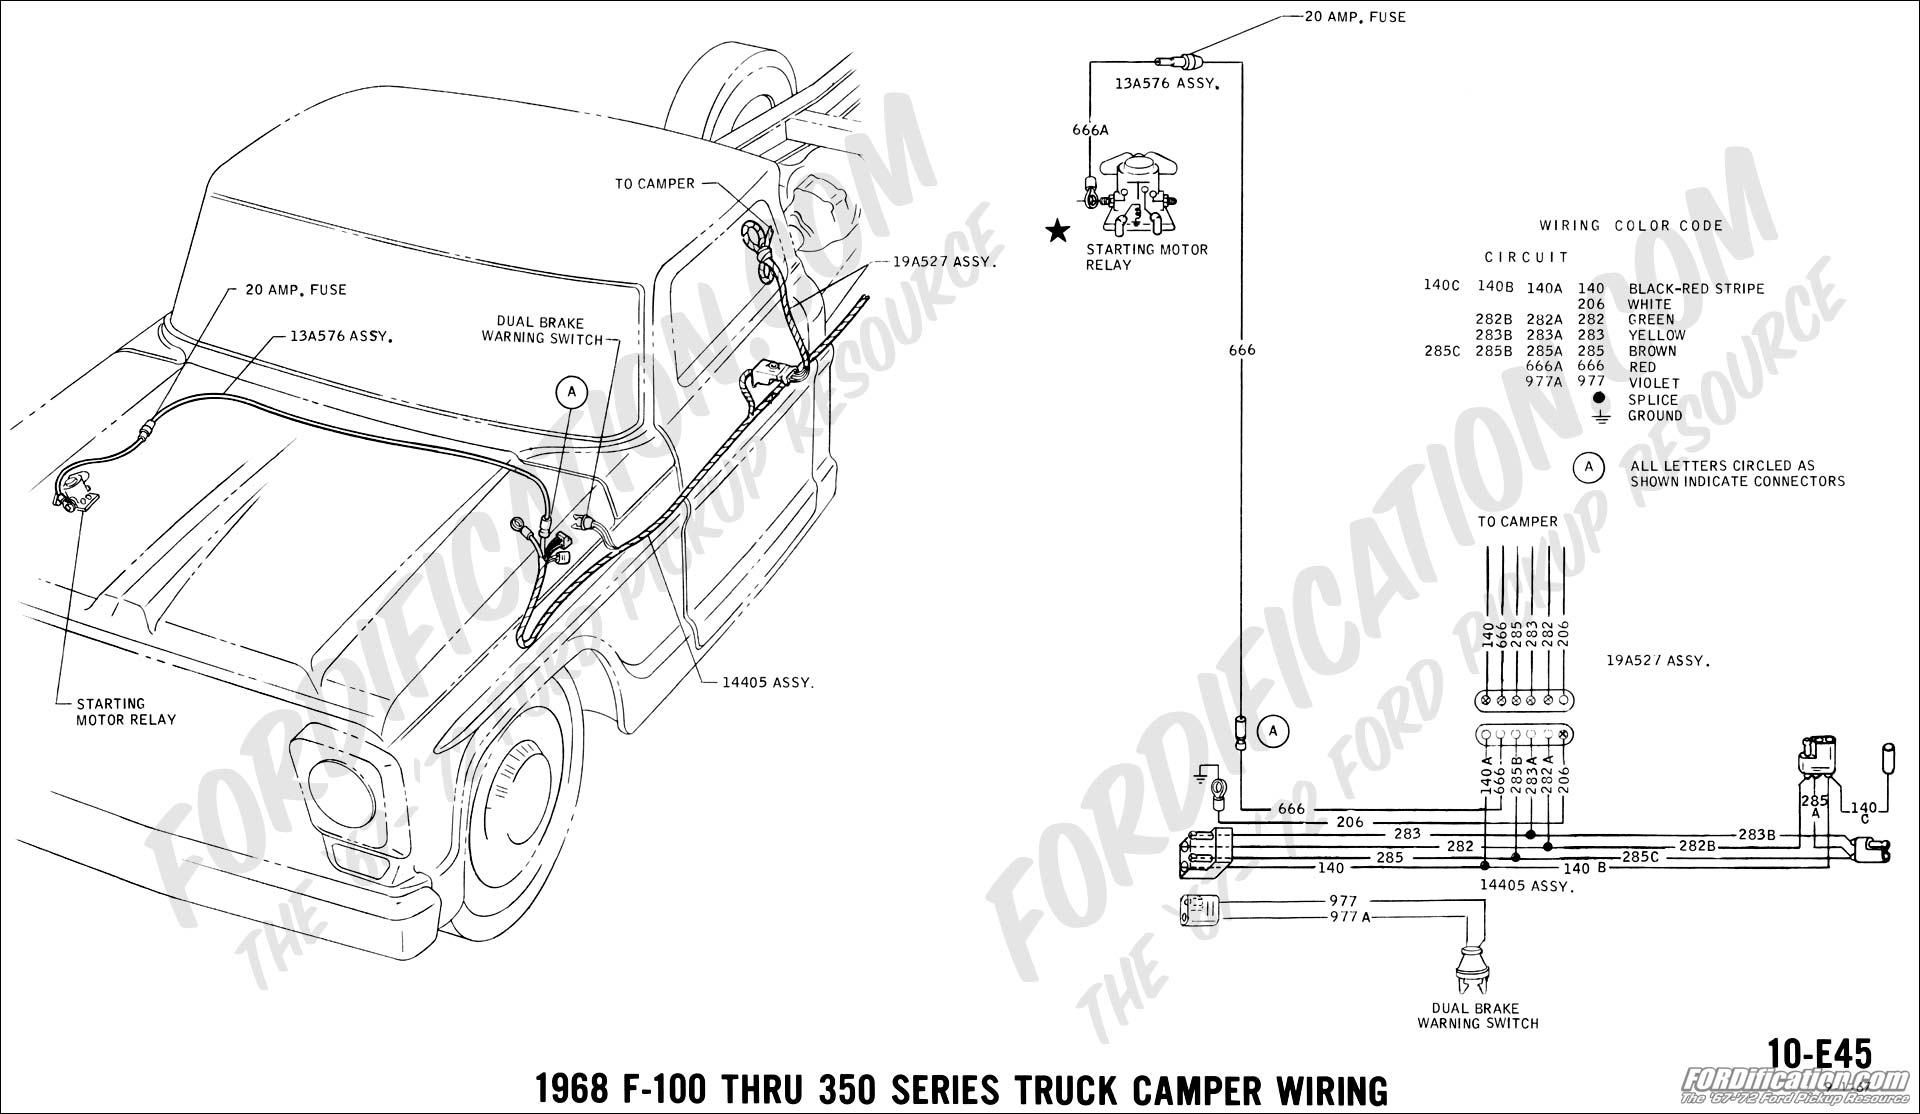 68 47 ford truck technical drawings and schematics section h wiring truck camper wire harness at readyjetset.co